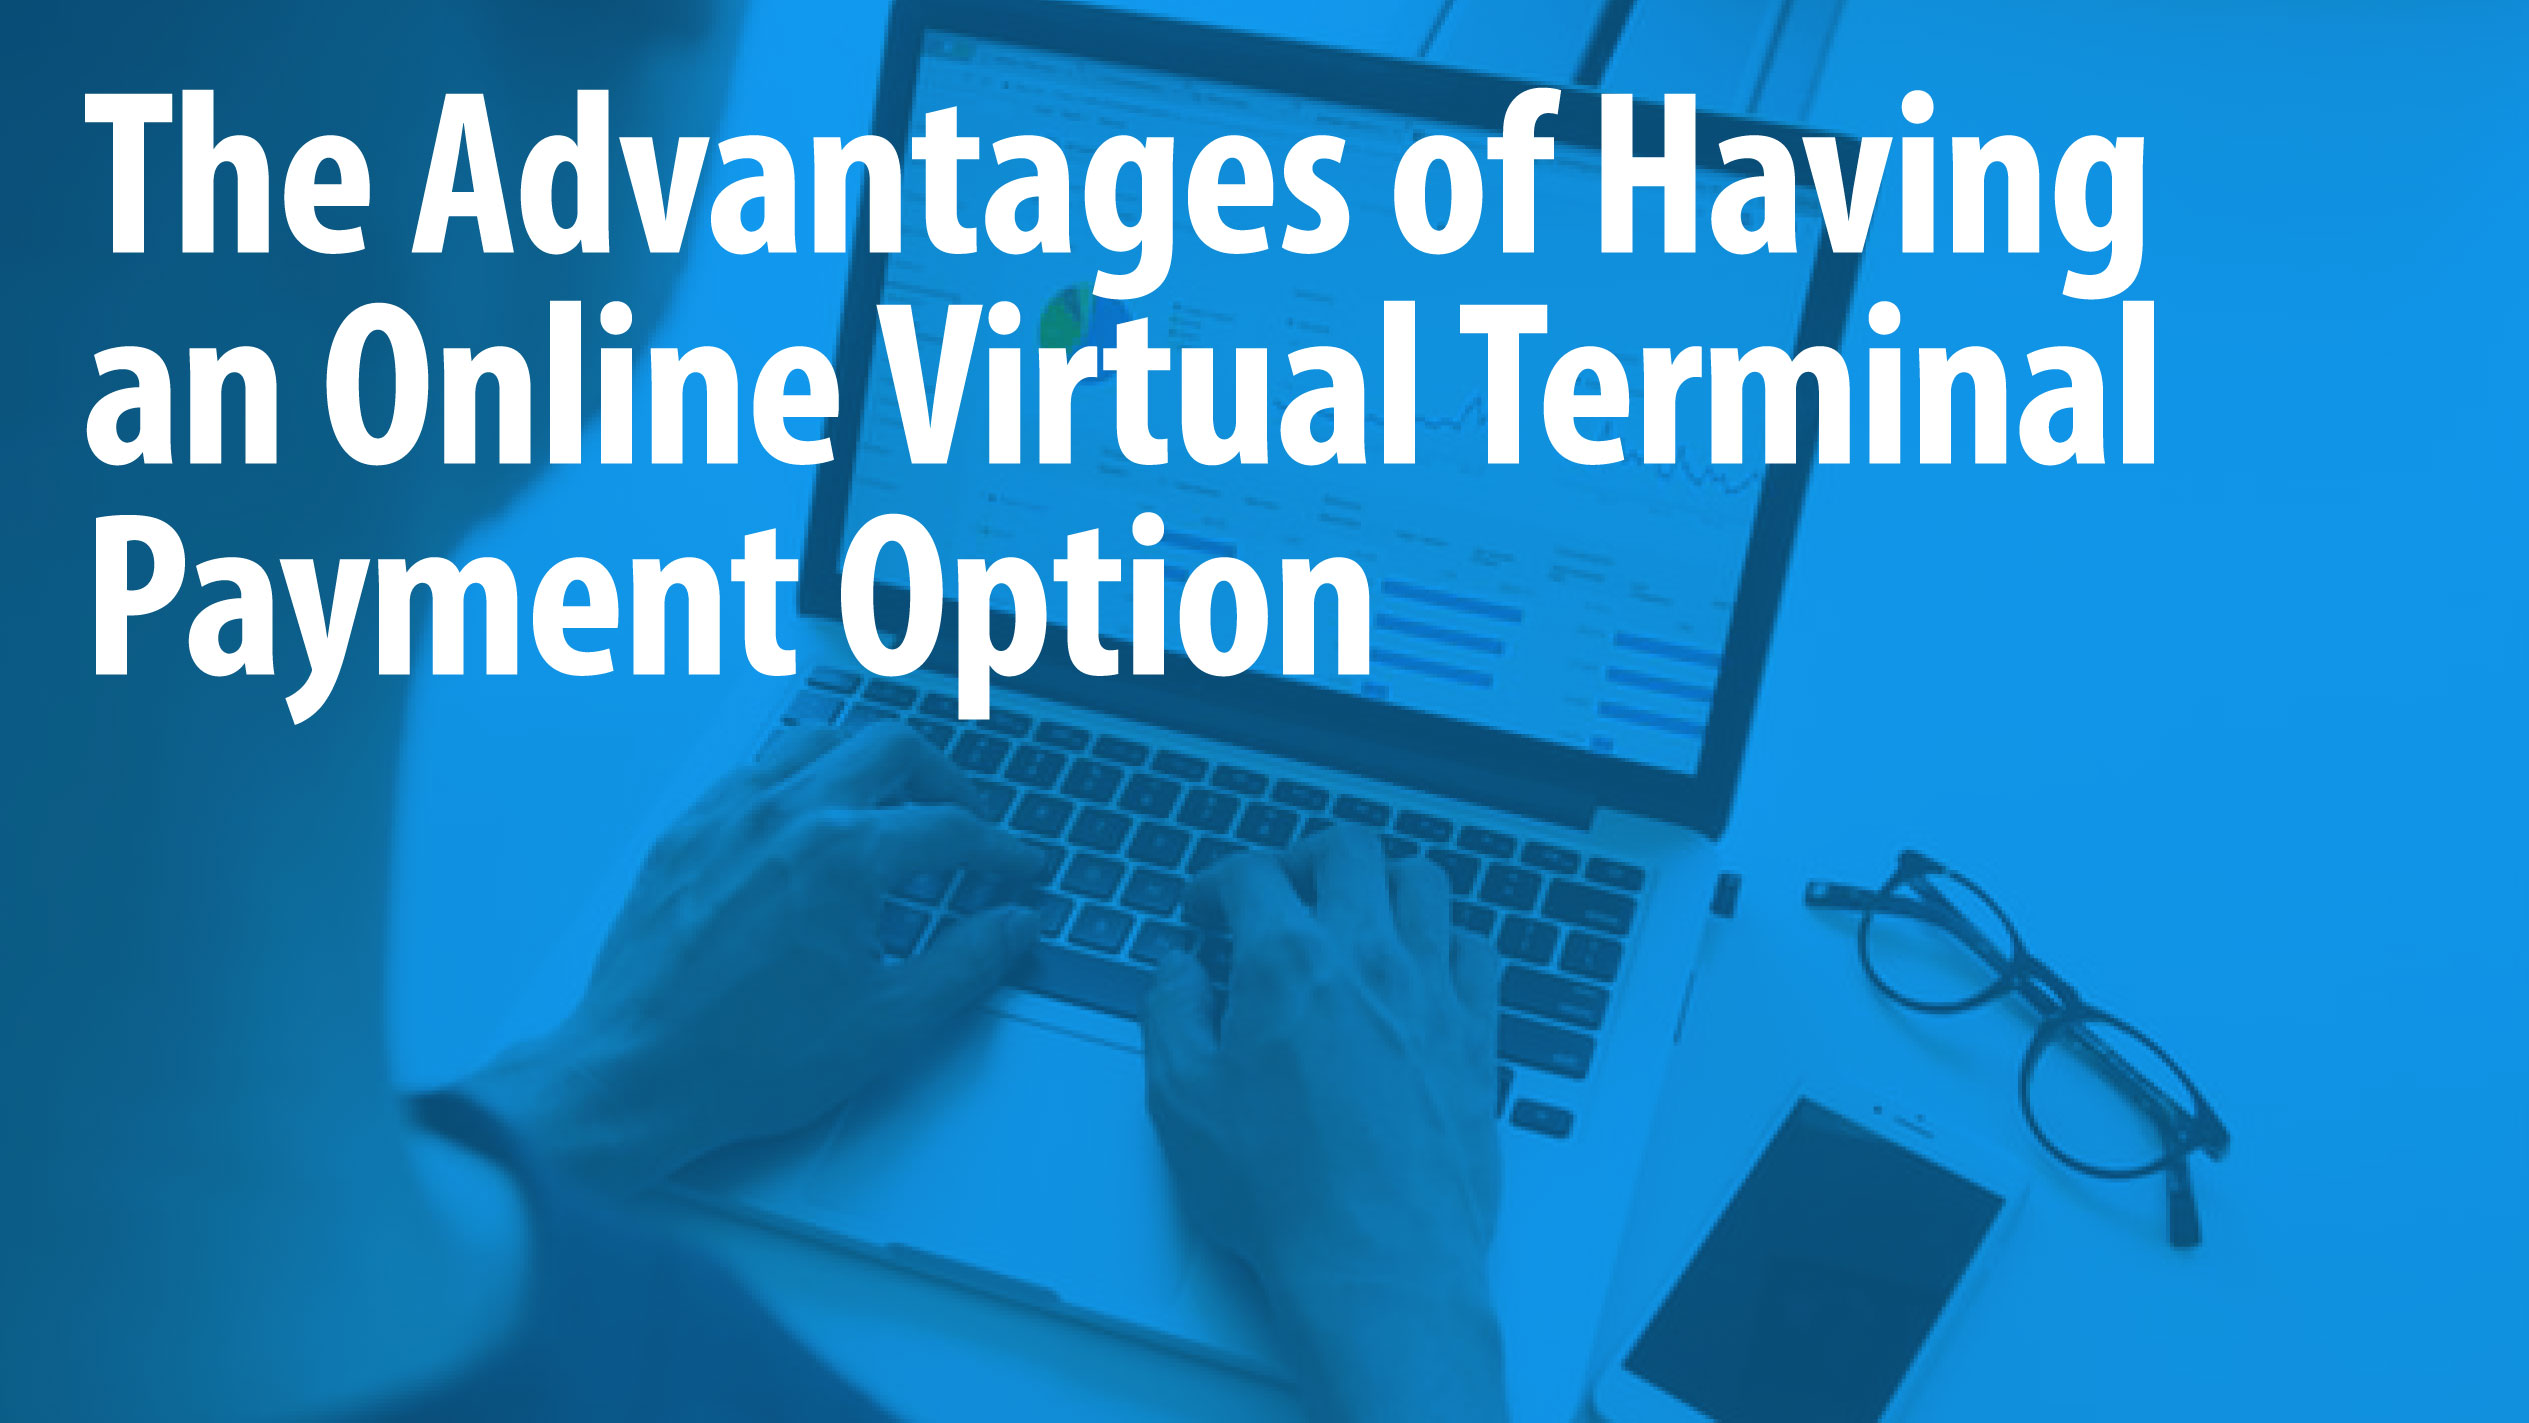 The Advantages of Having an Online Virtual Terminal Payment Option